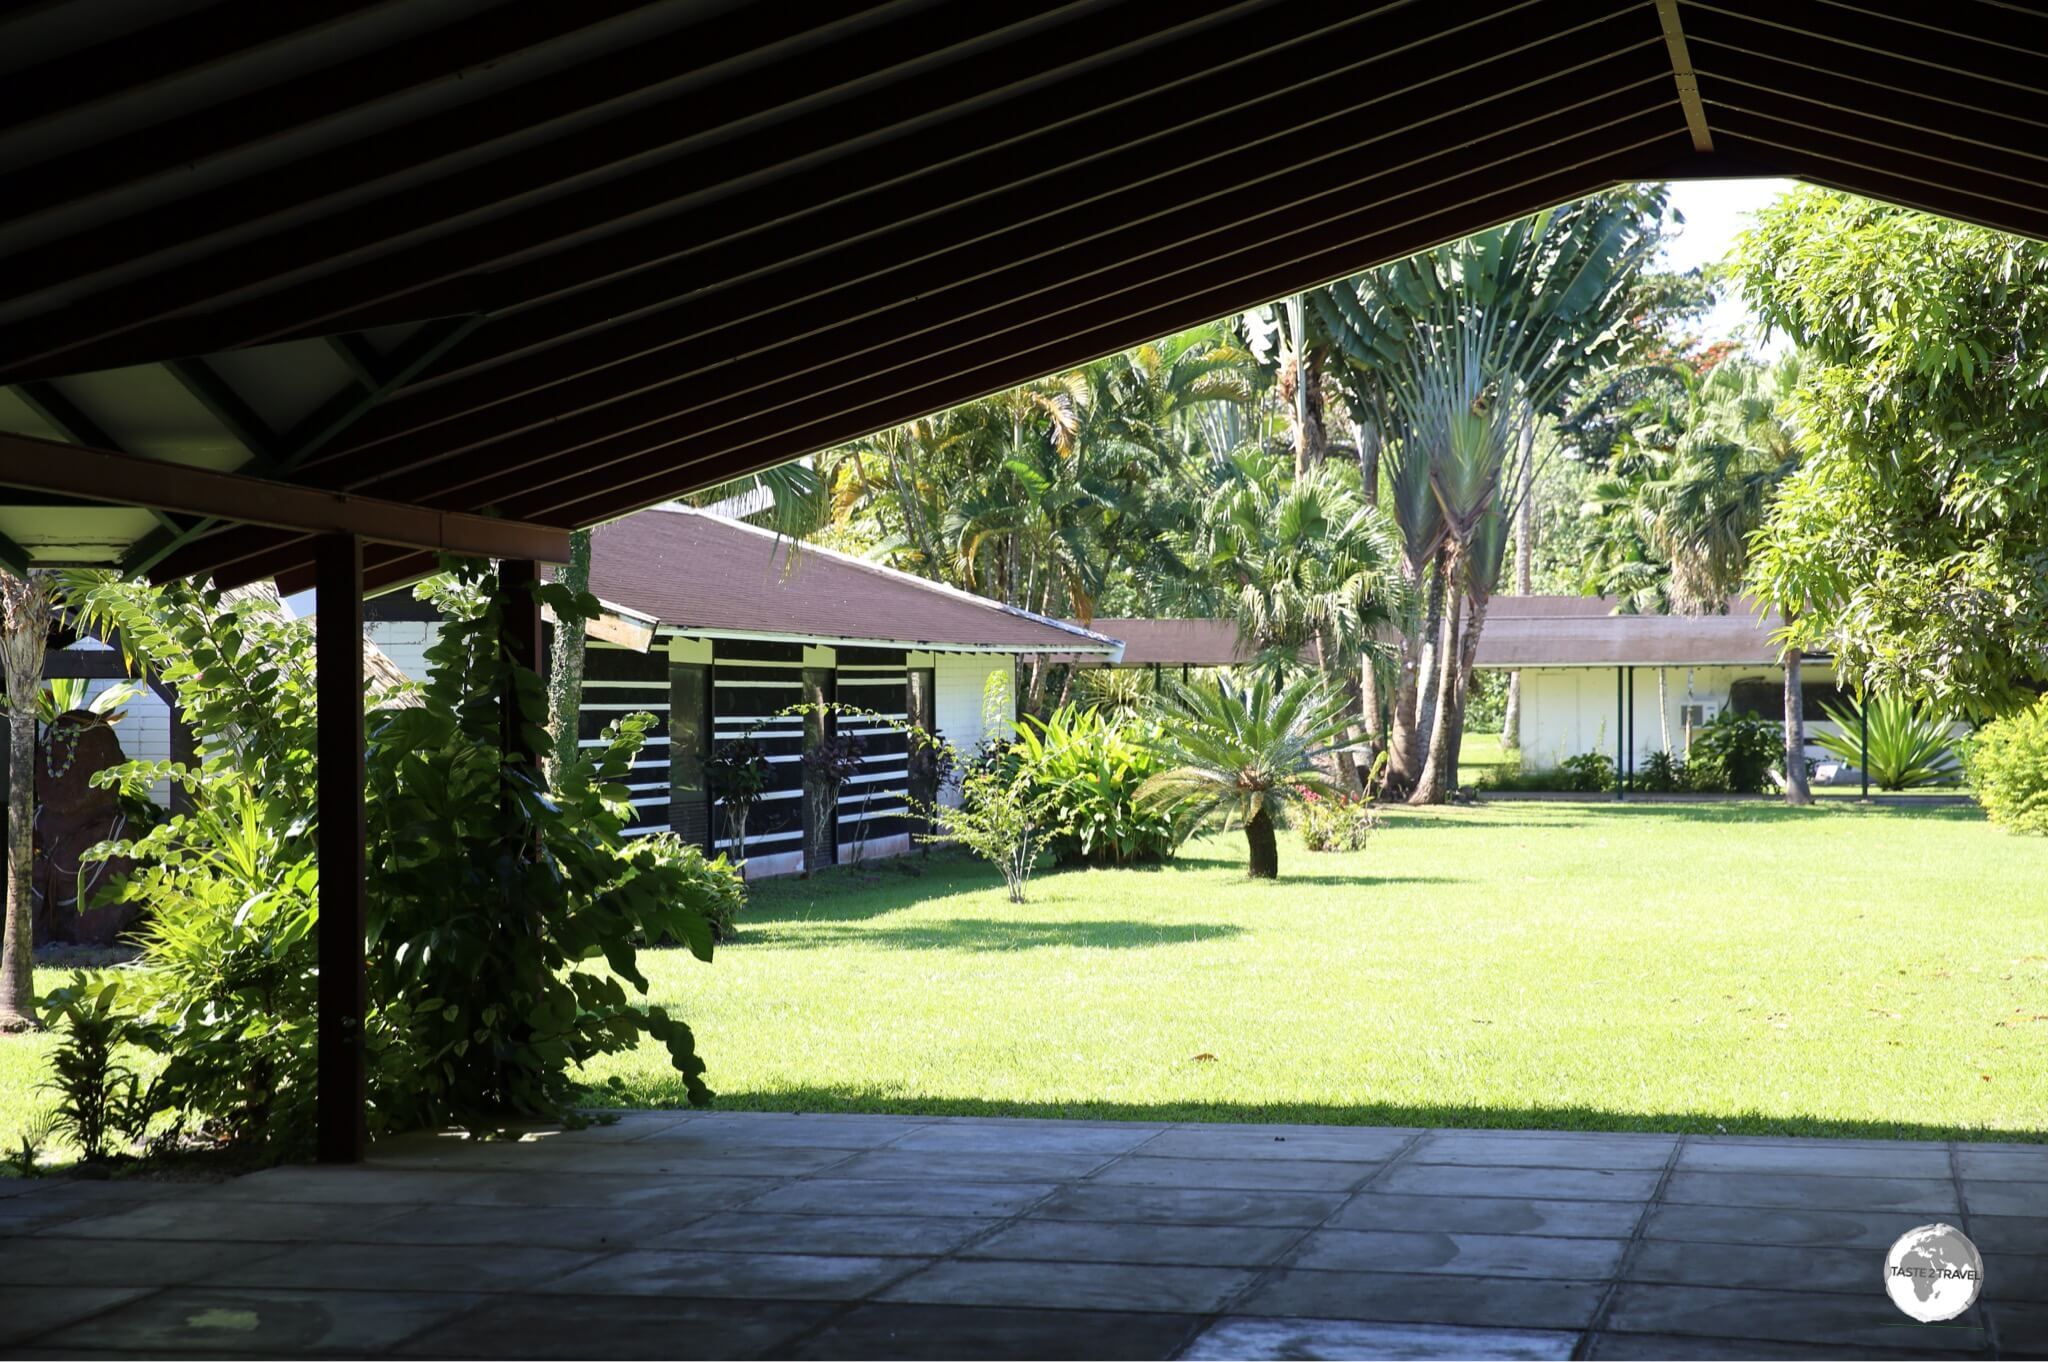 A sneak peak through the front gate of the now closed Paul Gauguin Museum.